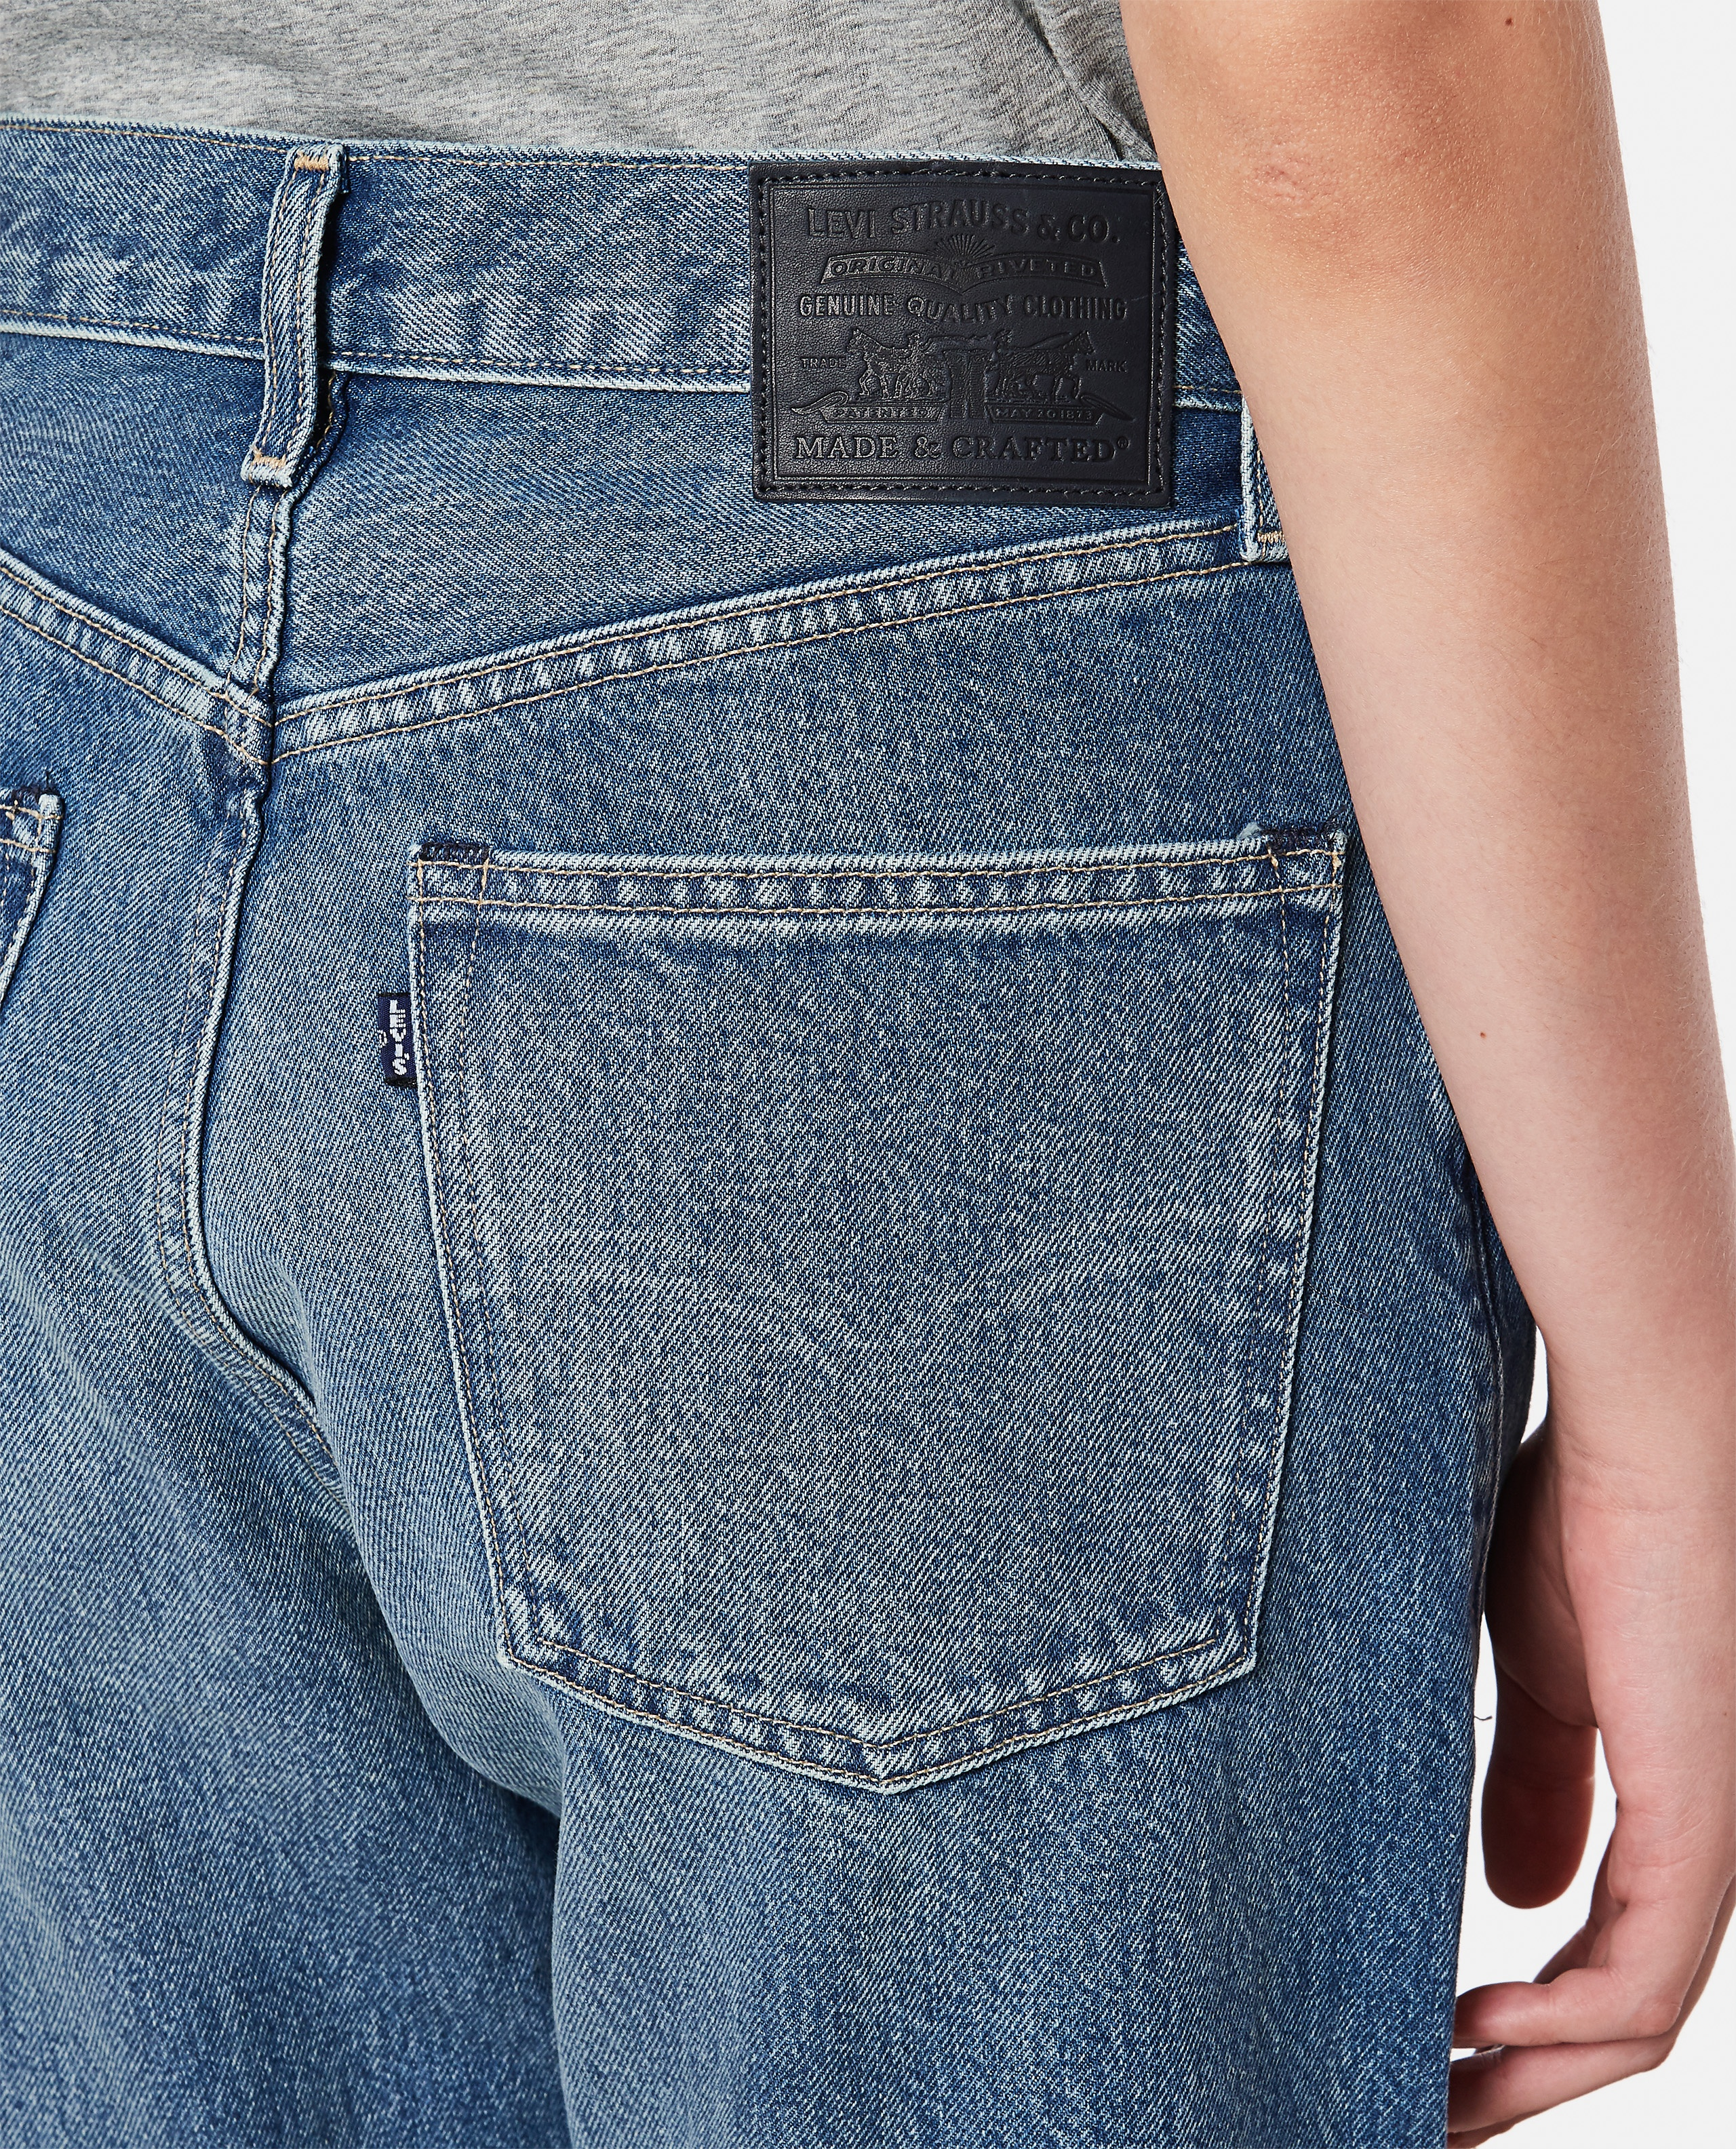 LEVI'S® MADE & CRAFTED® THE COLUMN JEANS Women Levi Strauss & Co. 000352890051347 4